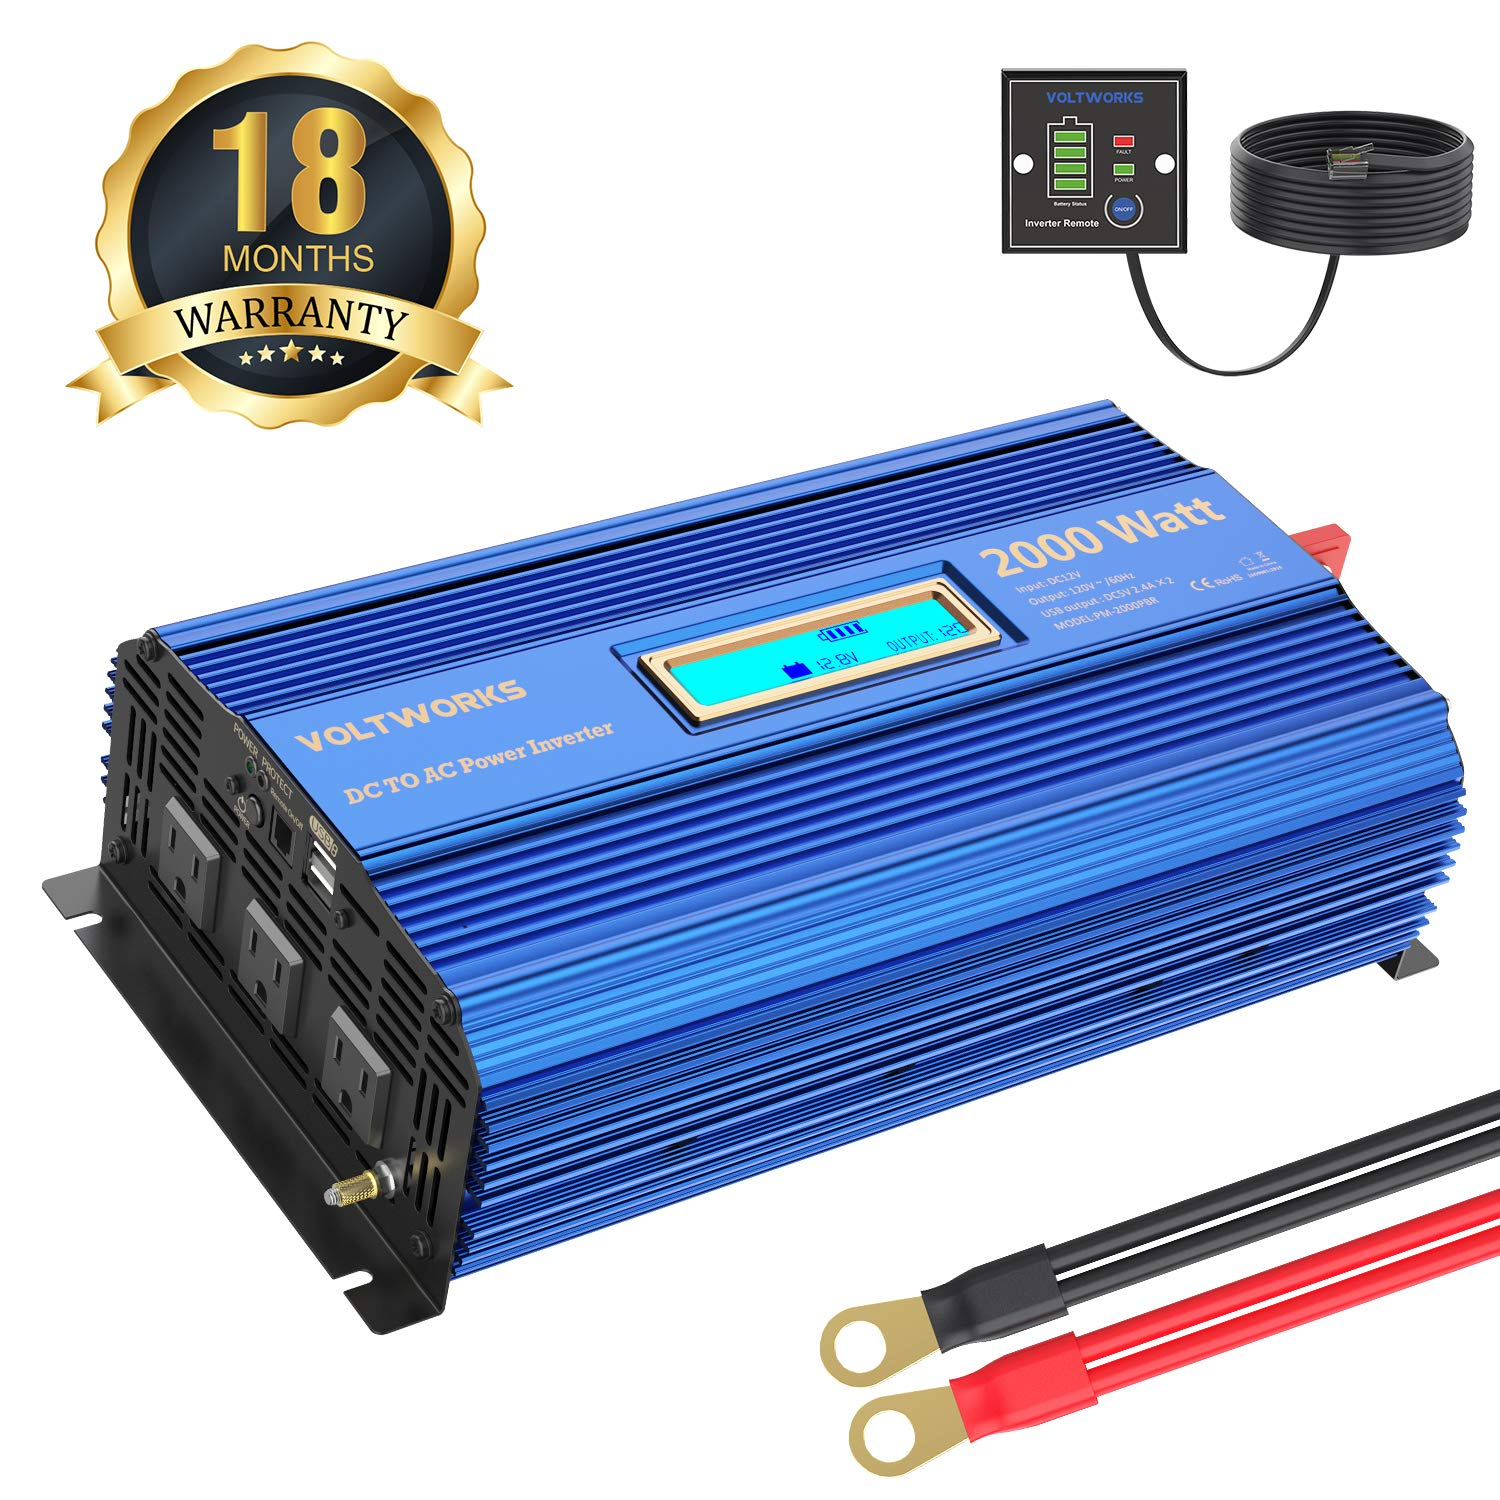 Power Inverter 2000Watt DC 12Volt to AC 120Volt with Remote Control & LCD Display Dual 2.4A USB Ports for RV Truck Boat by VOLTWORKS